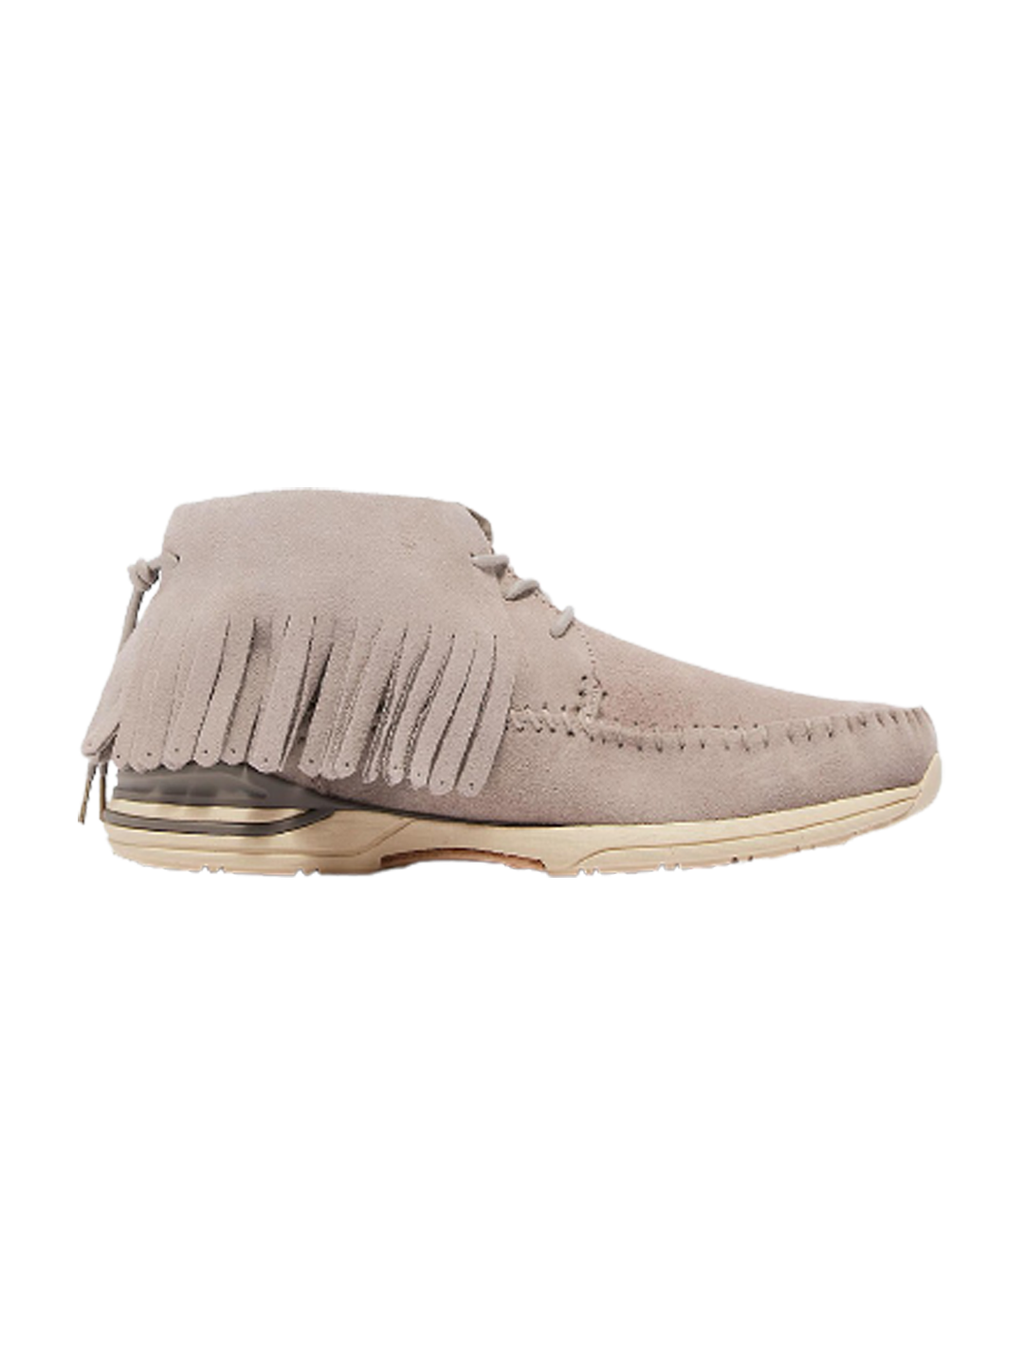 Grey Fbt Shaman Folk Shoes